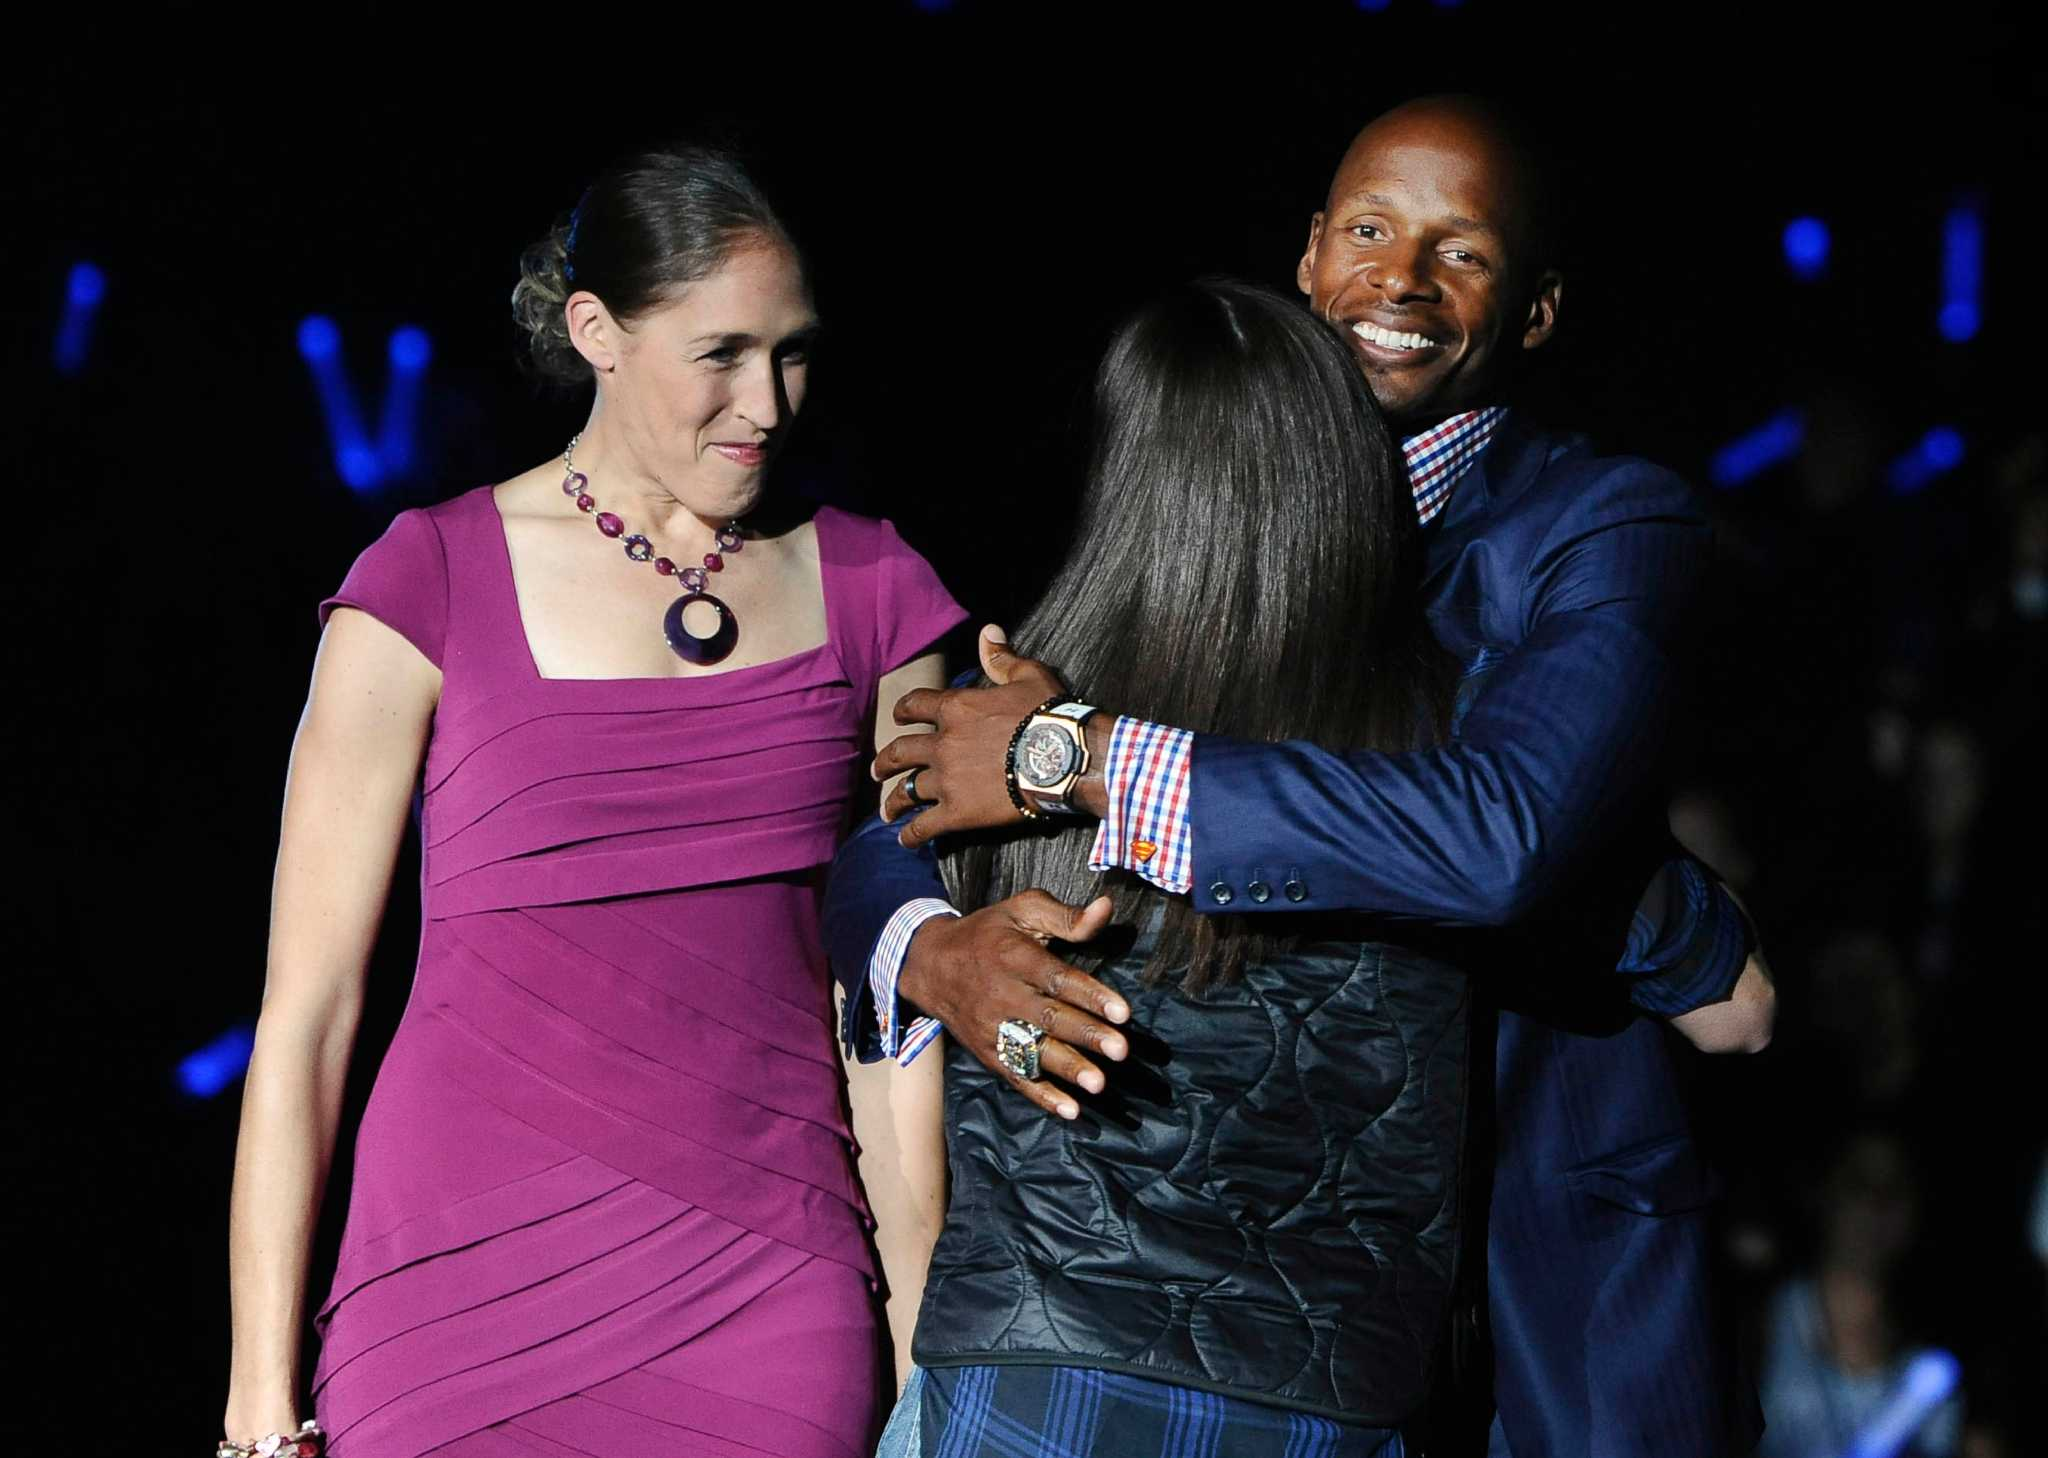 ray allen  rebecca lobo to have their numbers retired by